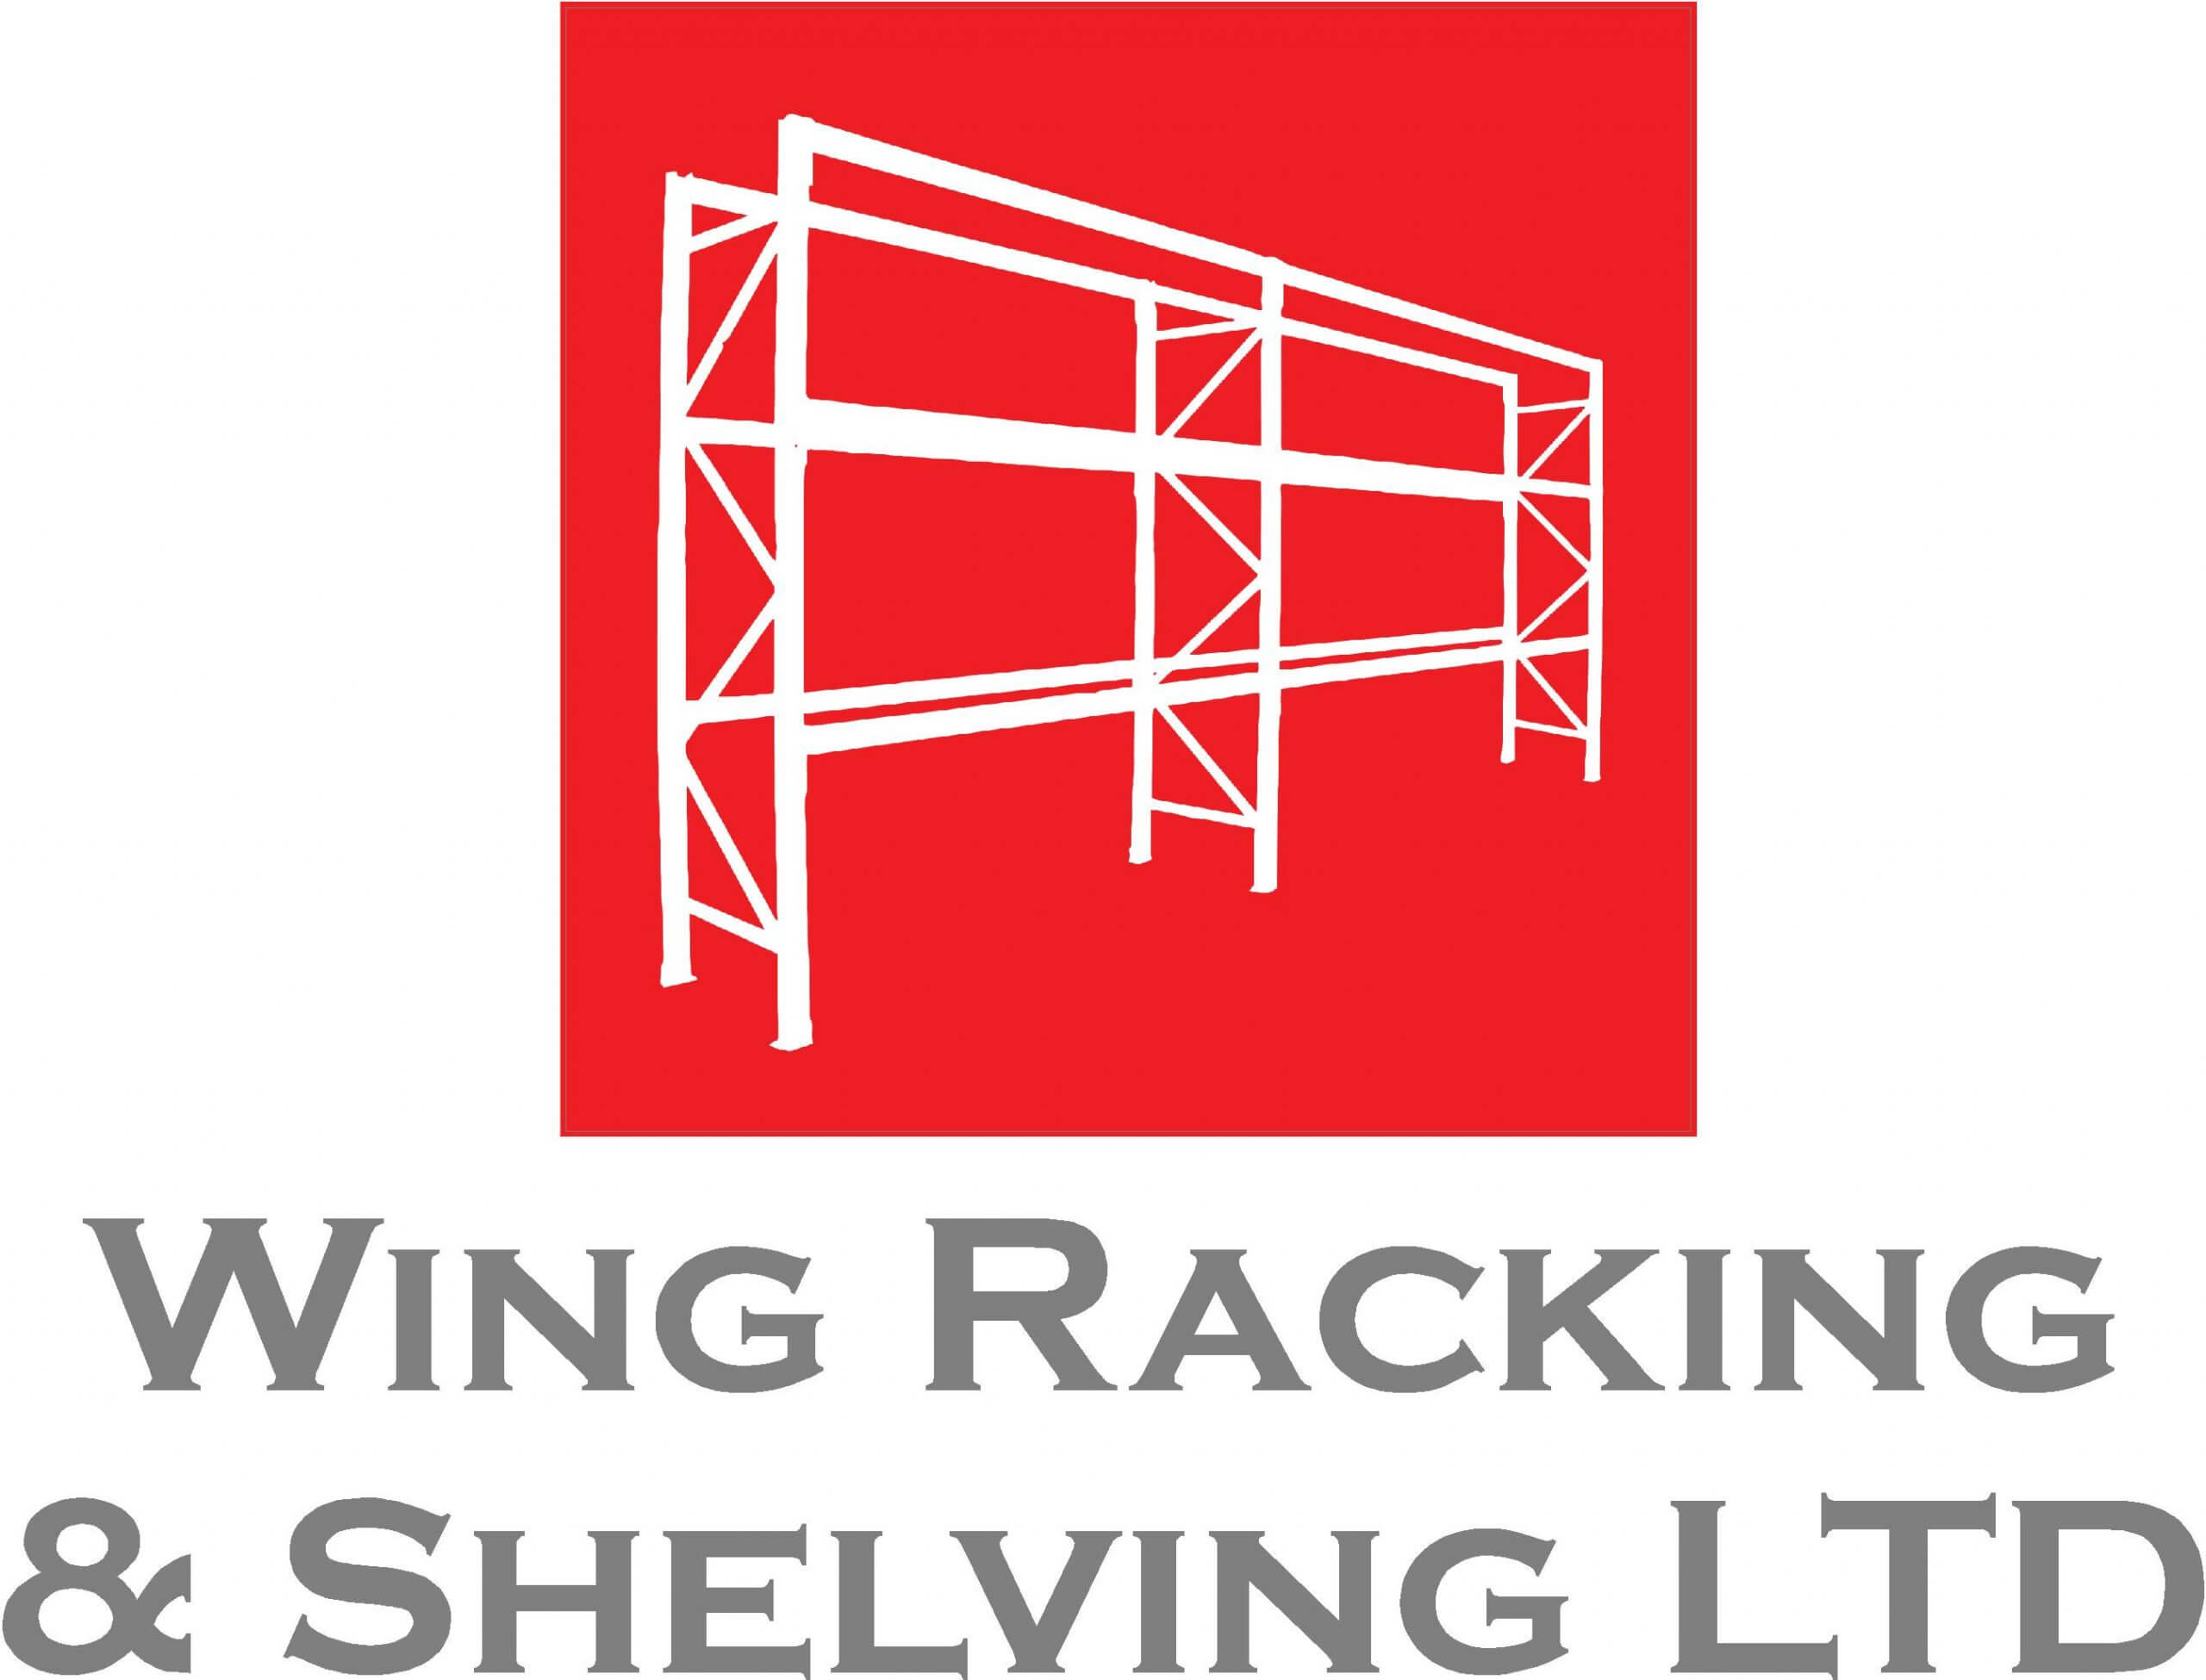 Wing Racking & Shelving